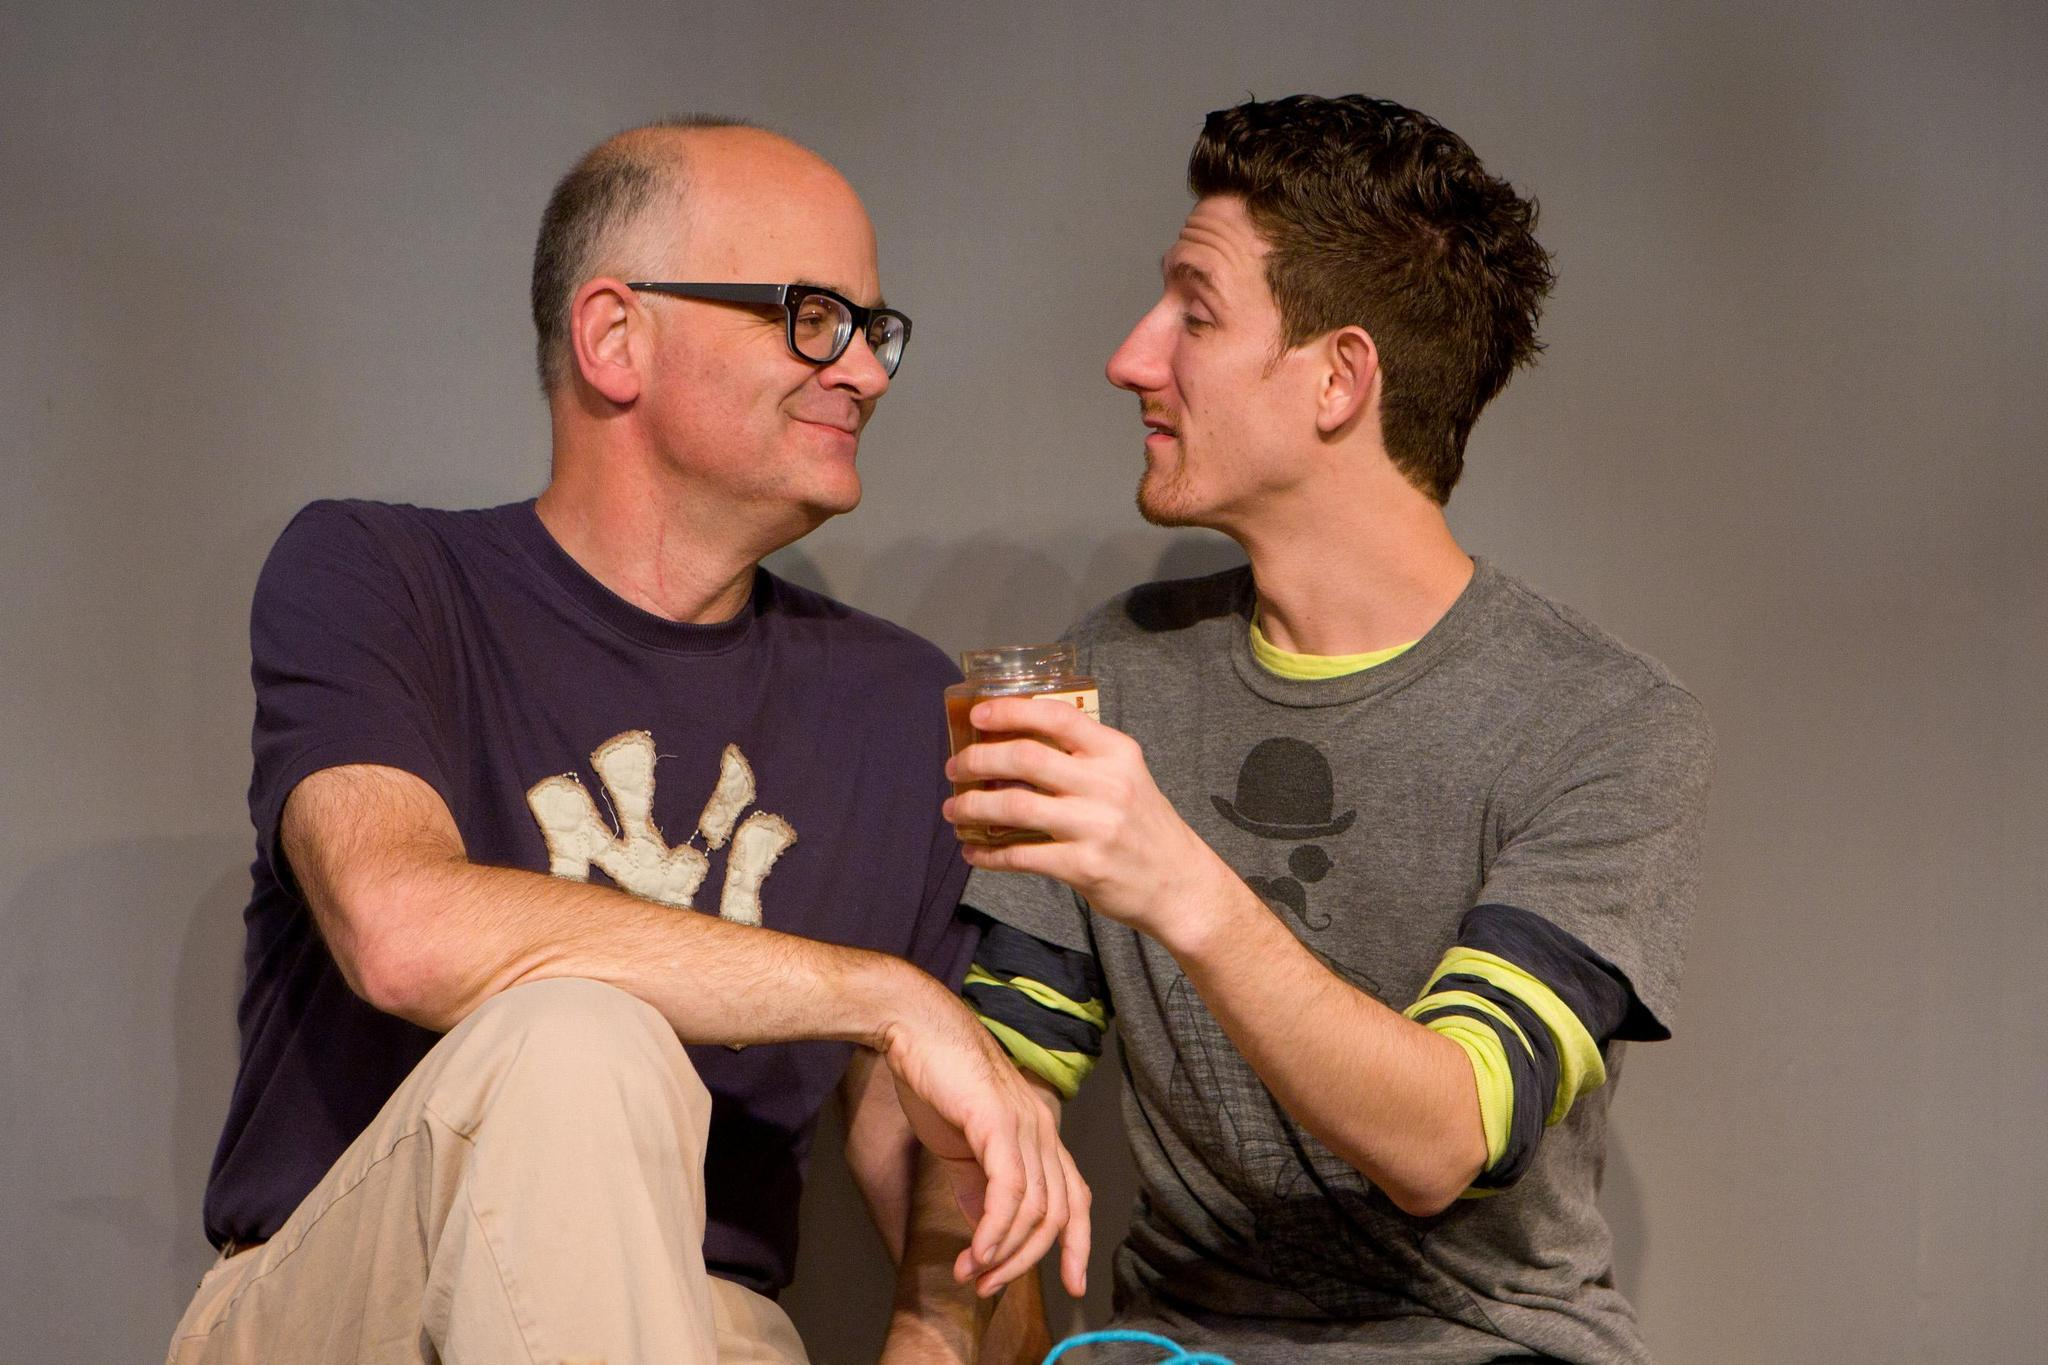 Thomas Ouellette (left) and Christopher McIntyre are mismatched lovers who clash over faith in 'Next Fall.'